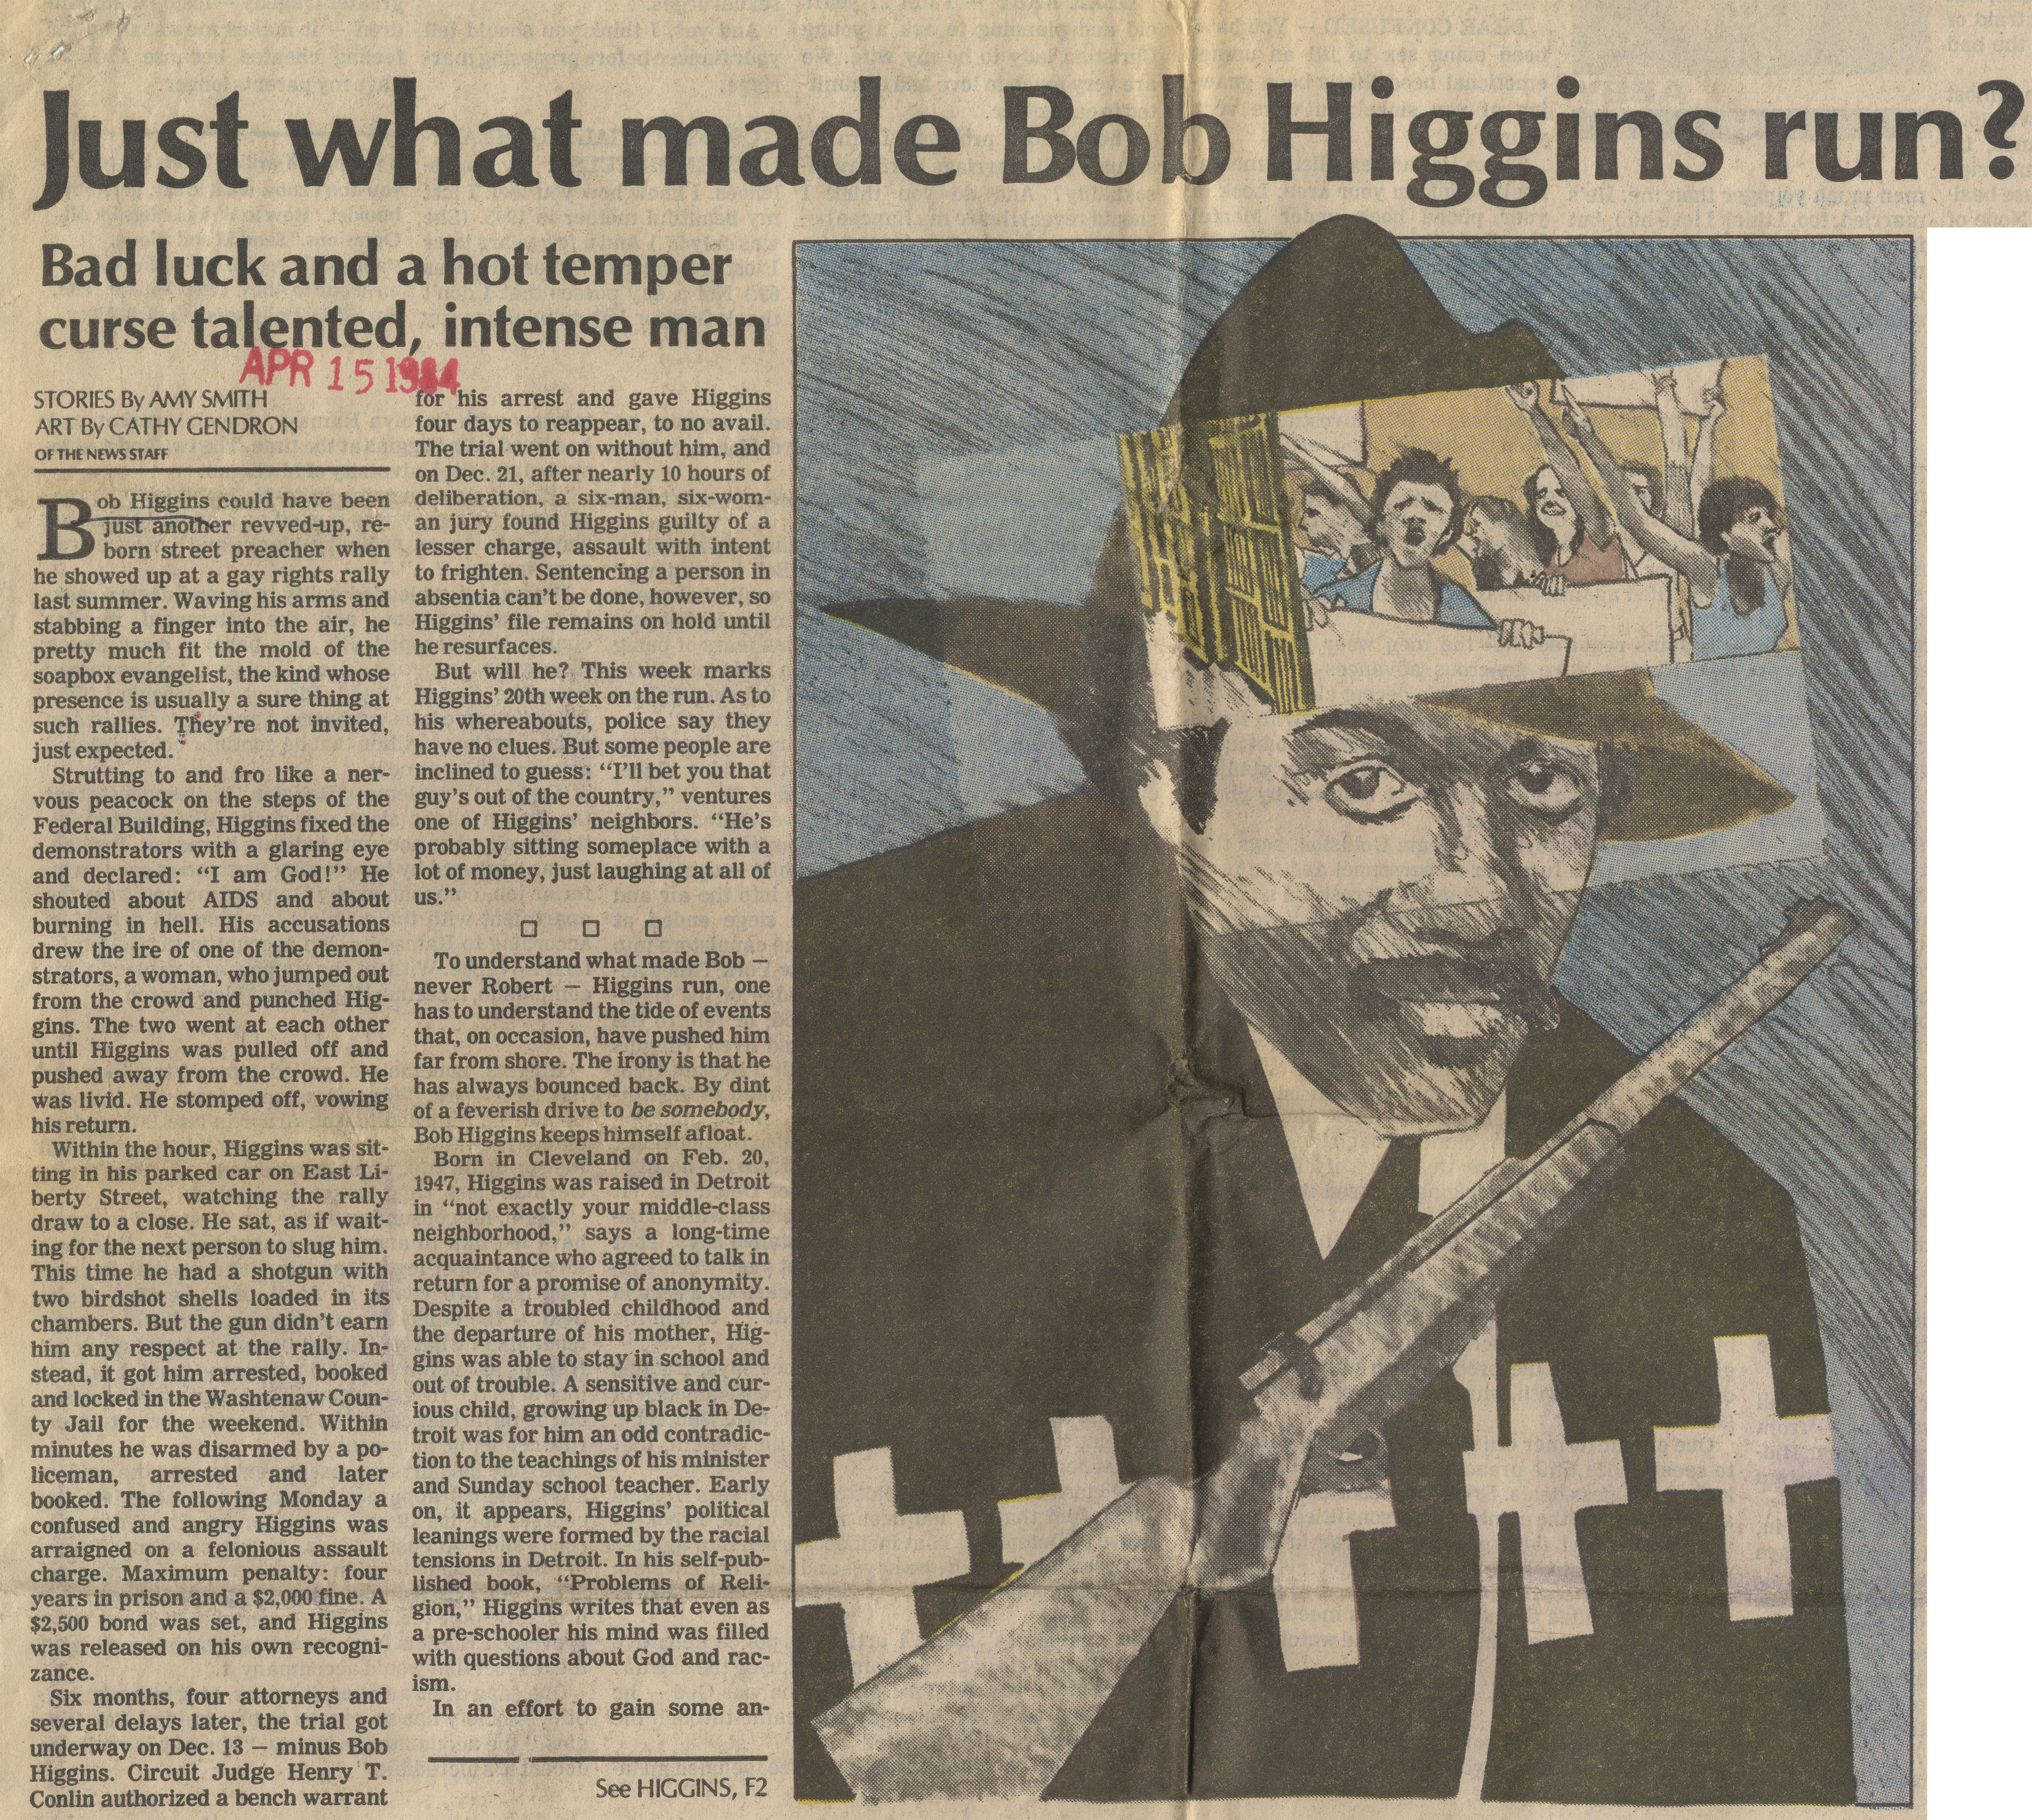 Just What Made Bob Higgins Run? image